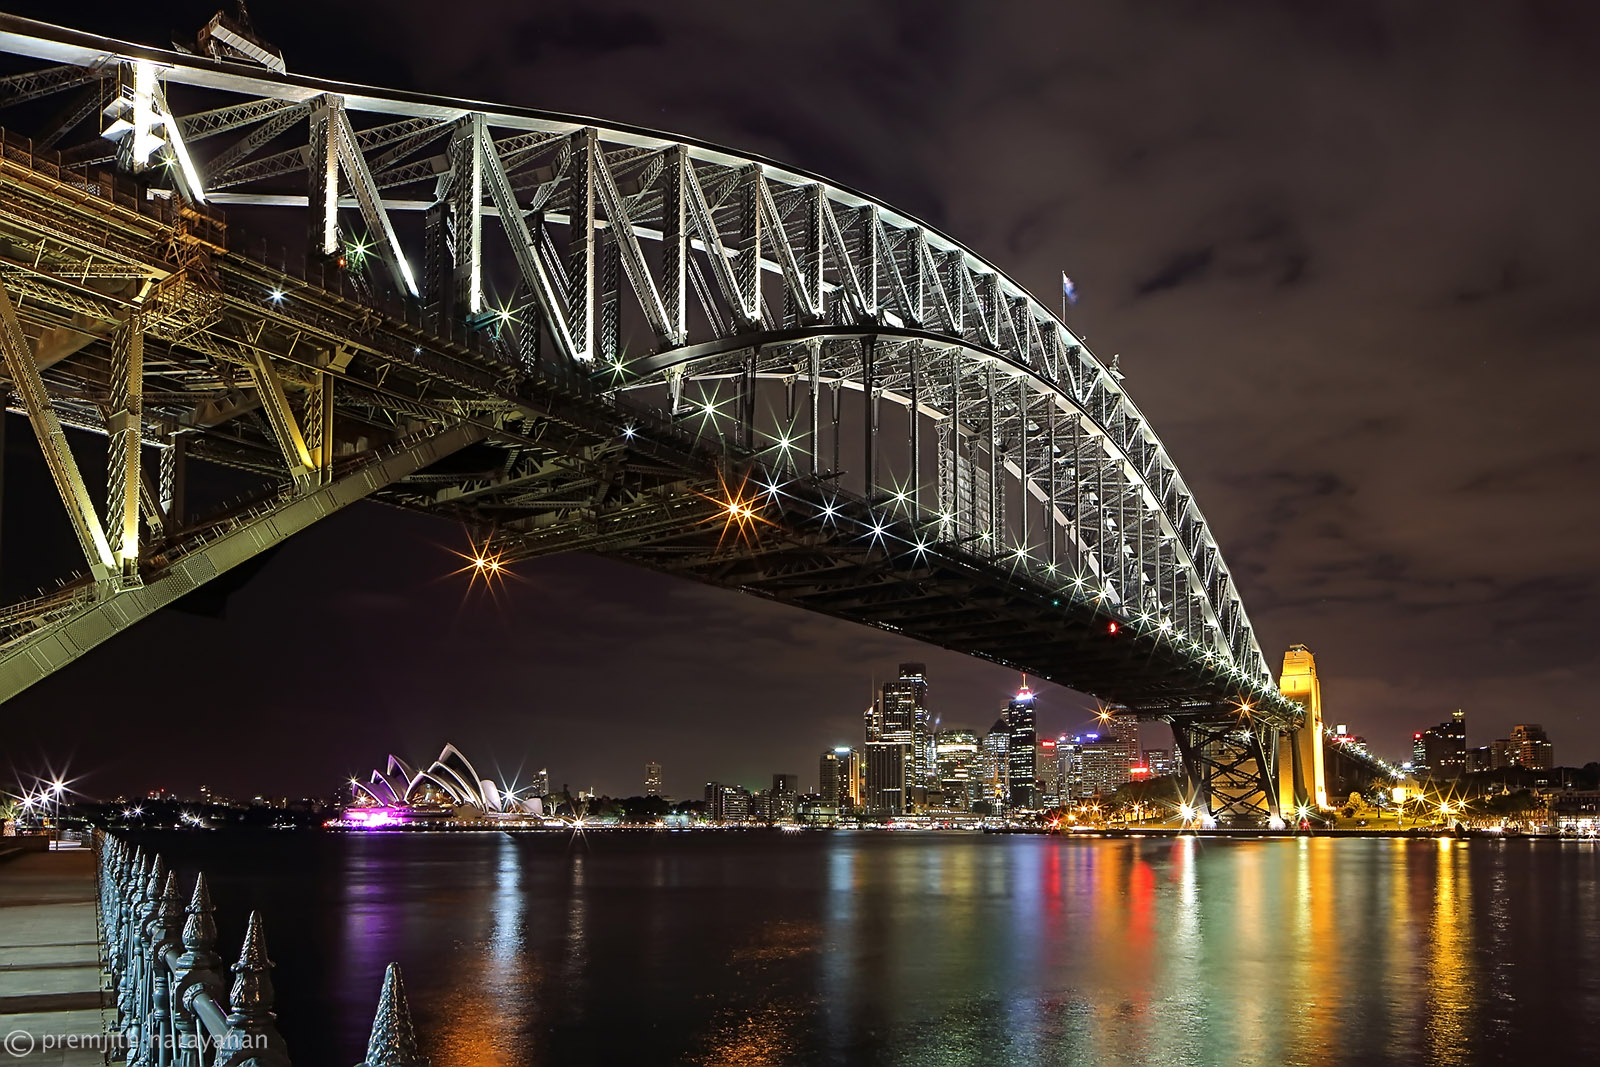 View of the Sydney Harbour Bridge and the 'Opera House'